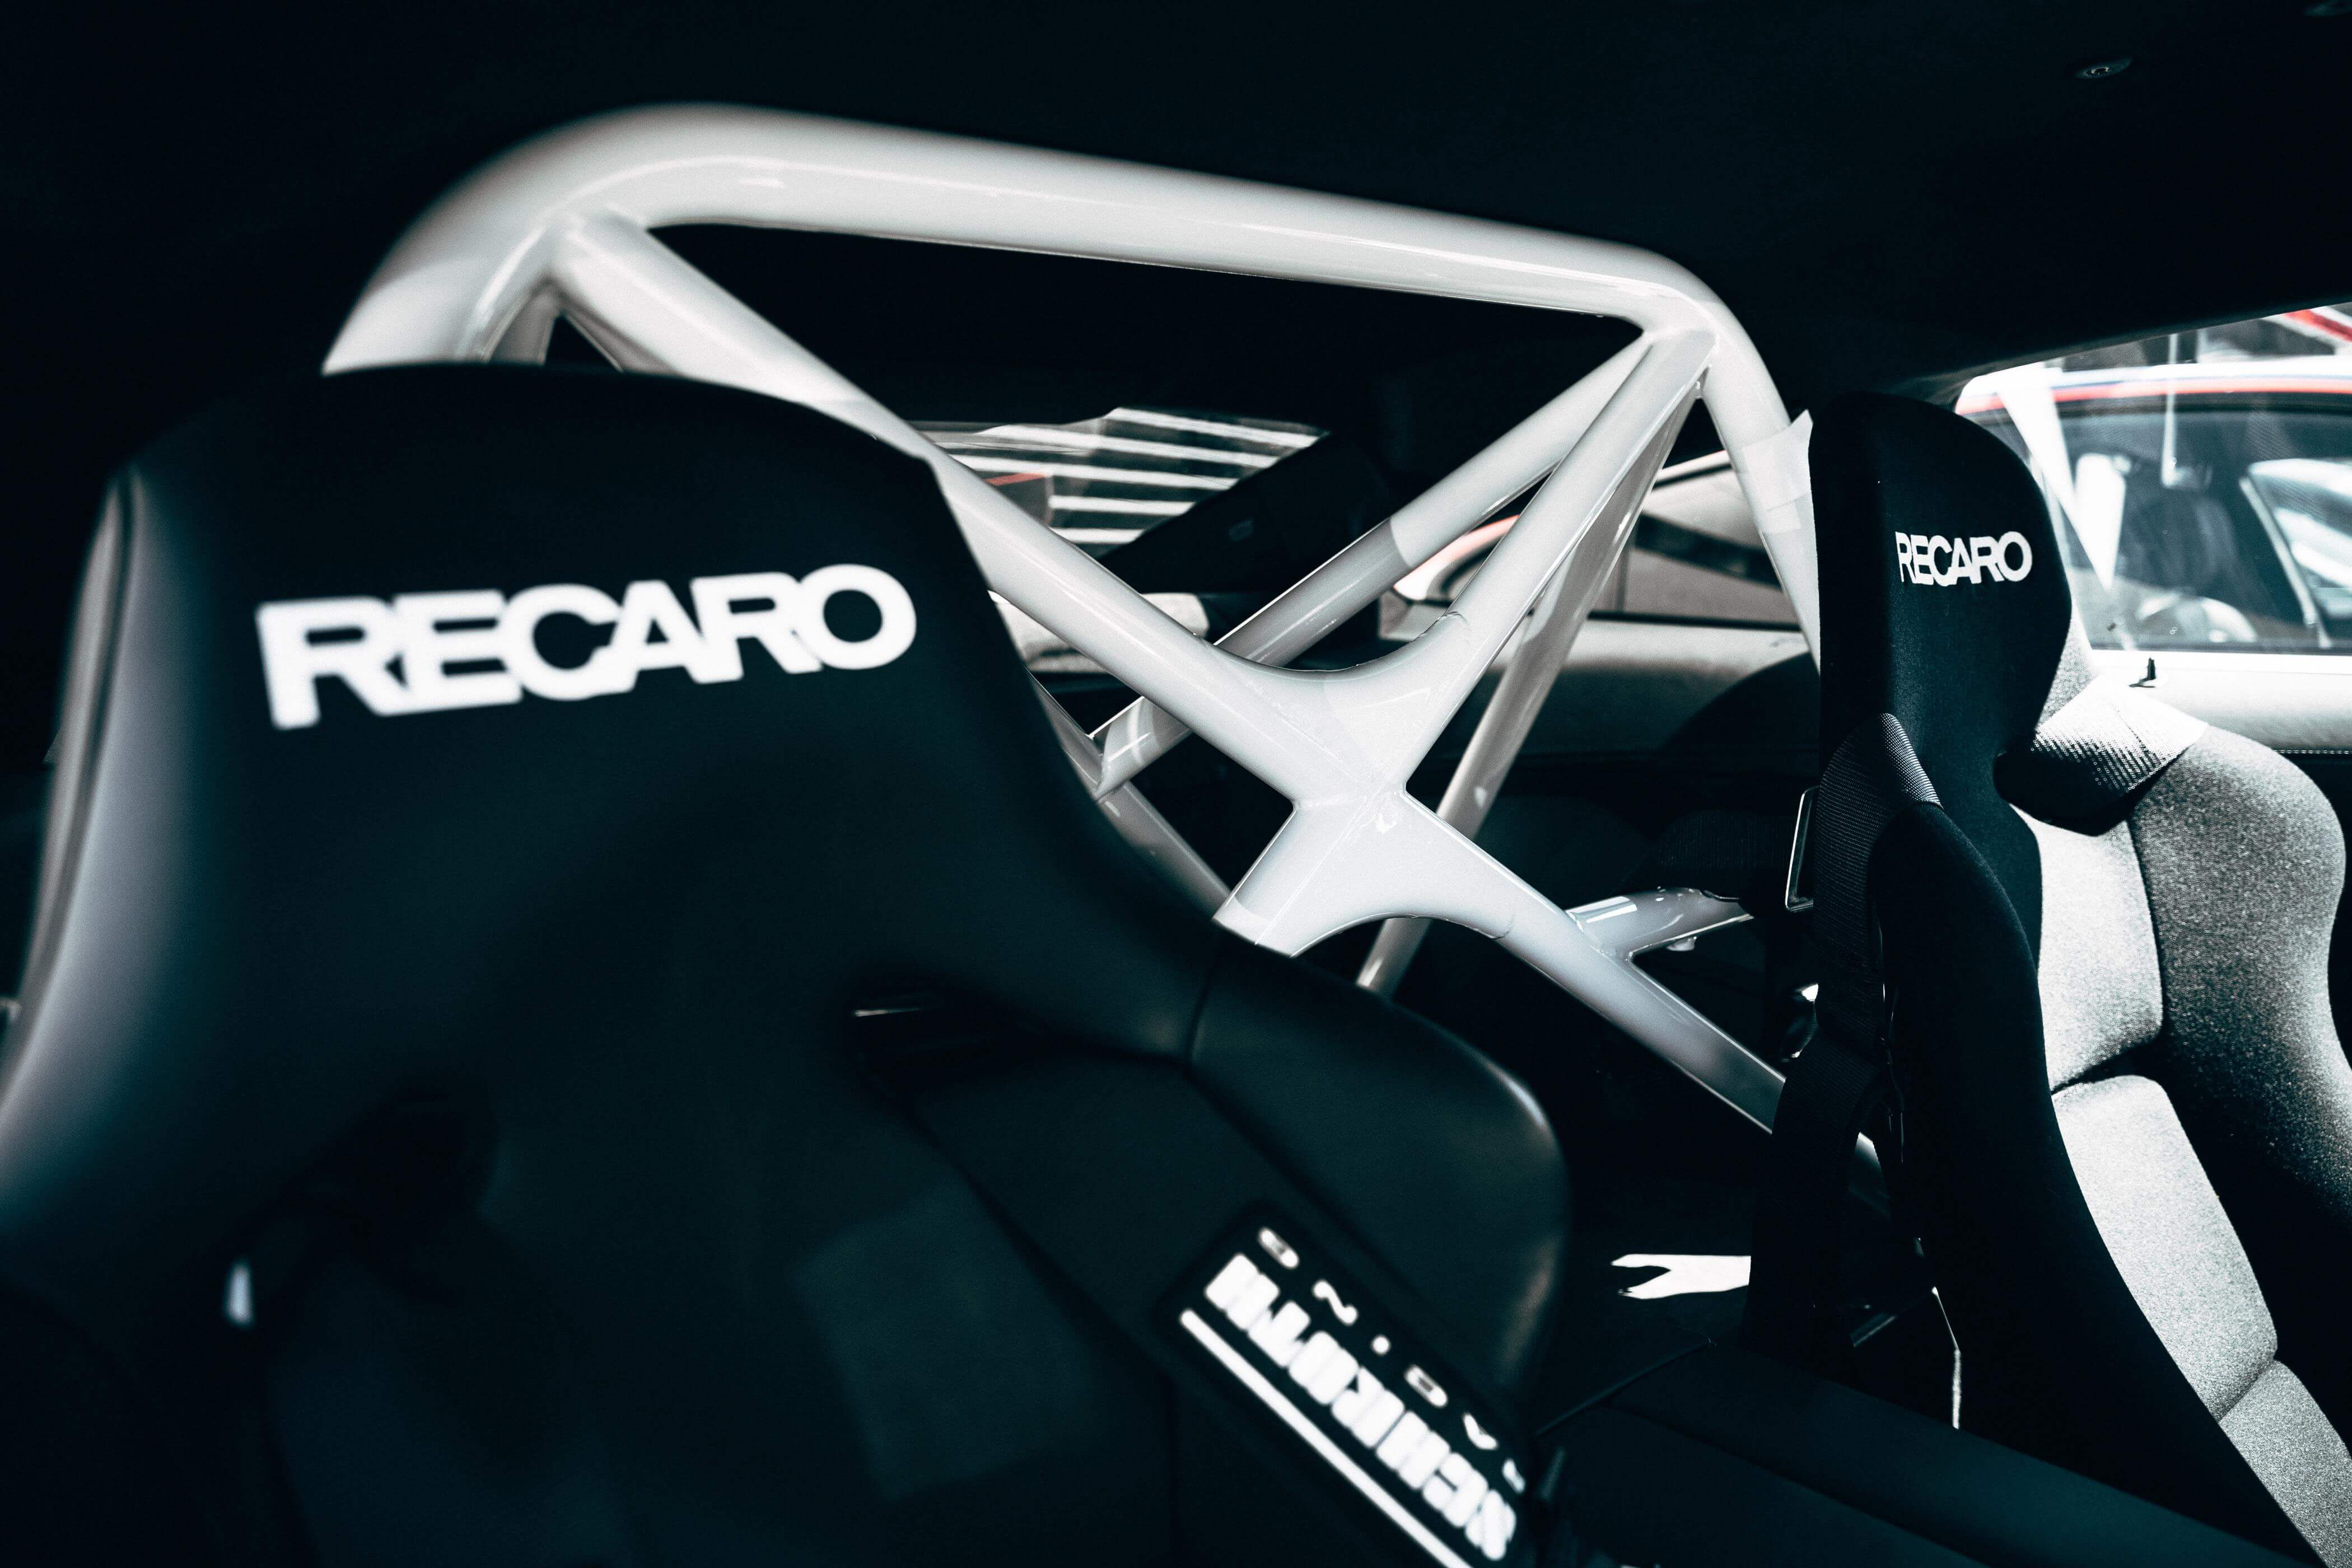 Asientos Recaro y barras antivuelco del BMW M8 MotoGP Safety Car